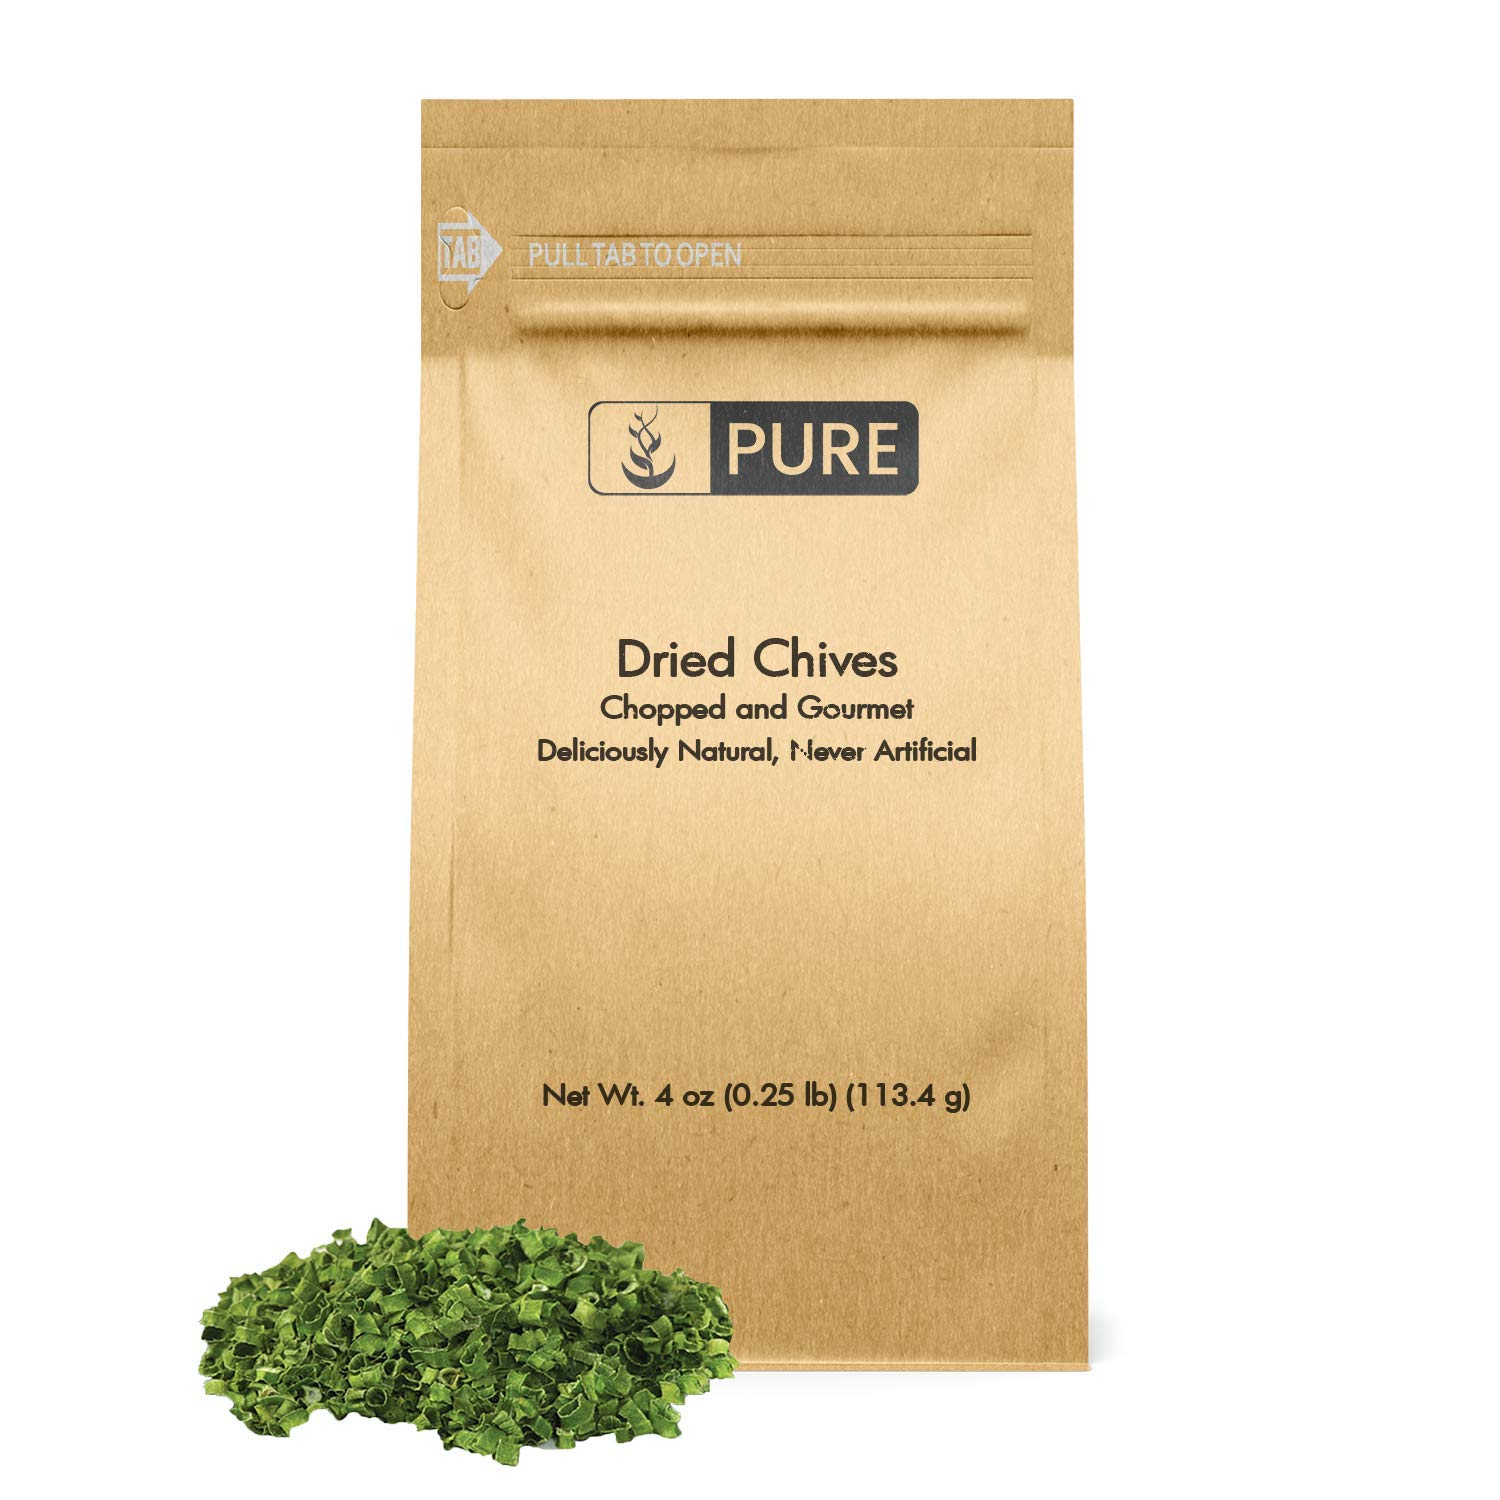 Dried Chives 4 oz Thin Delicate Cho Add as Max 78% OFF Topping cheap Gourmet